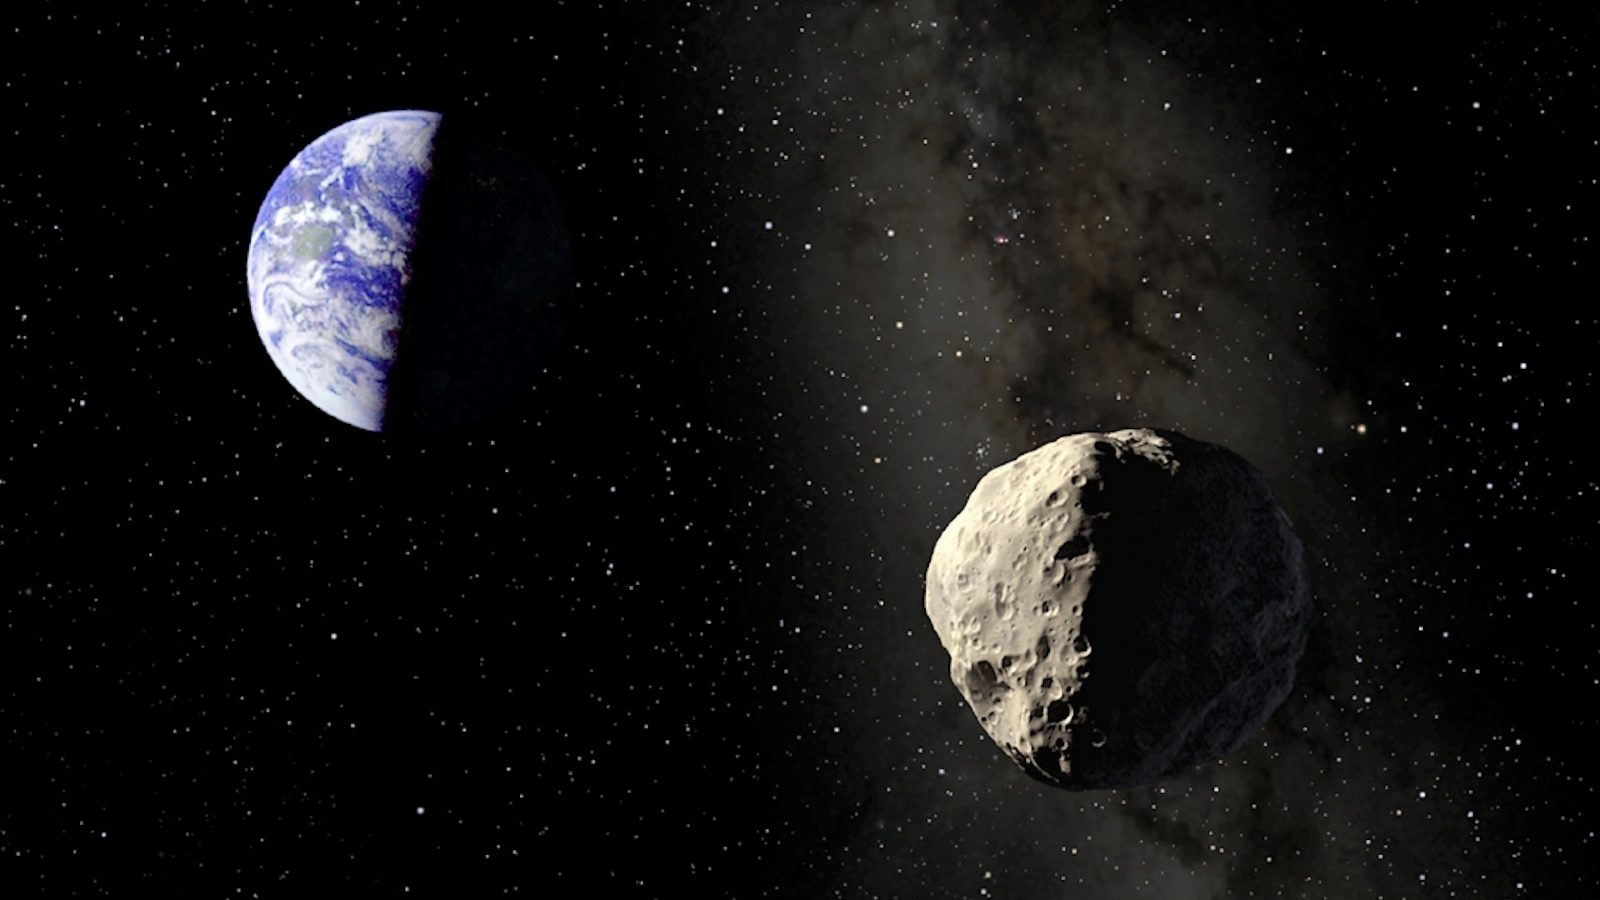 Artist's impression of the asteroid Apophis approaching the Earth